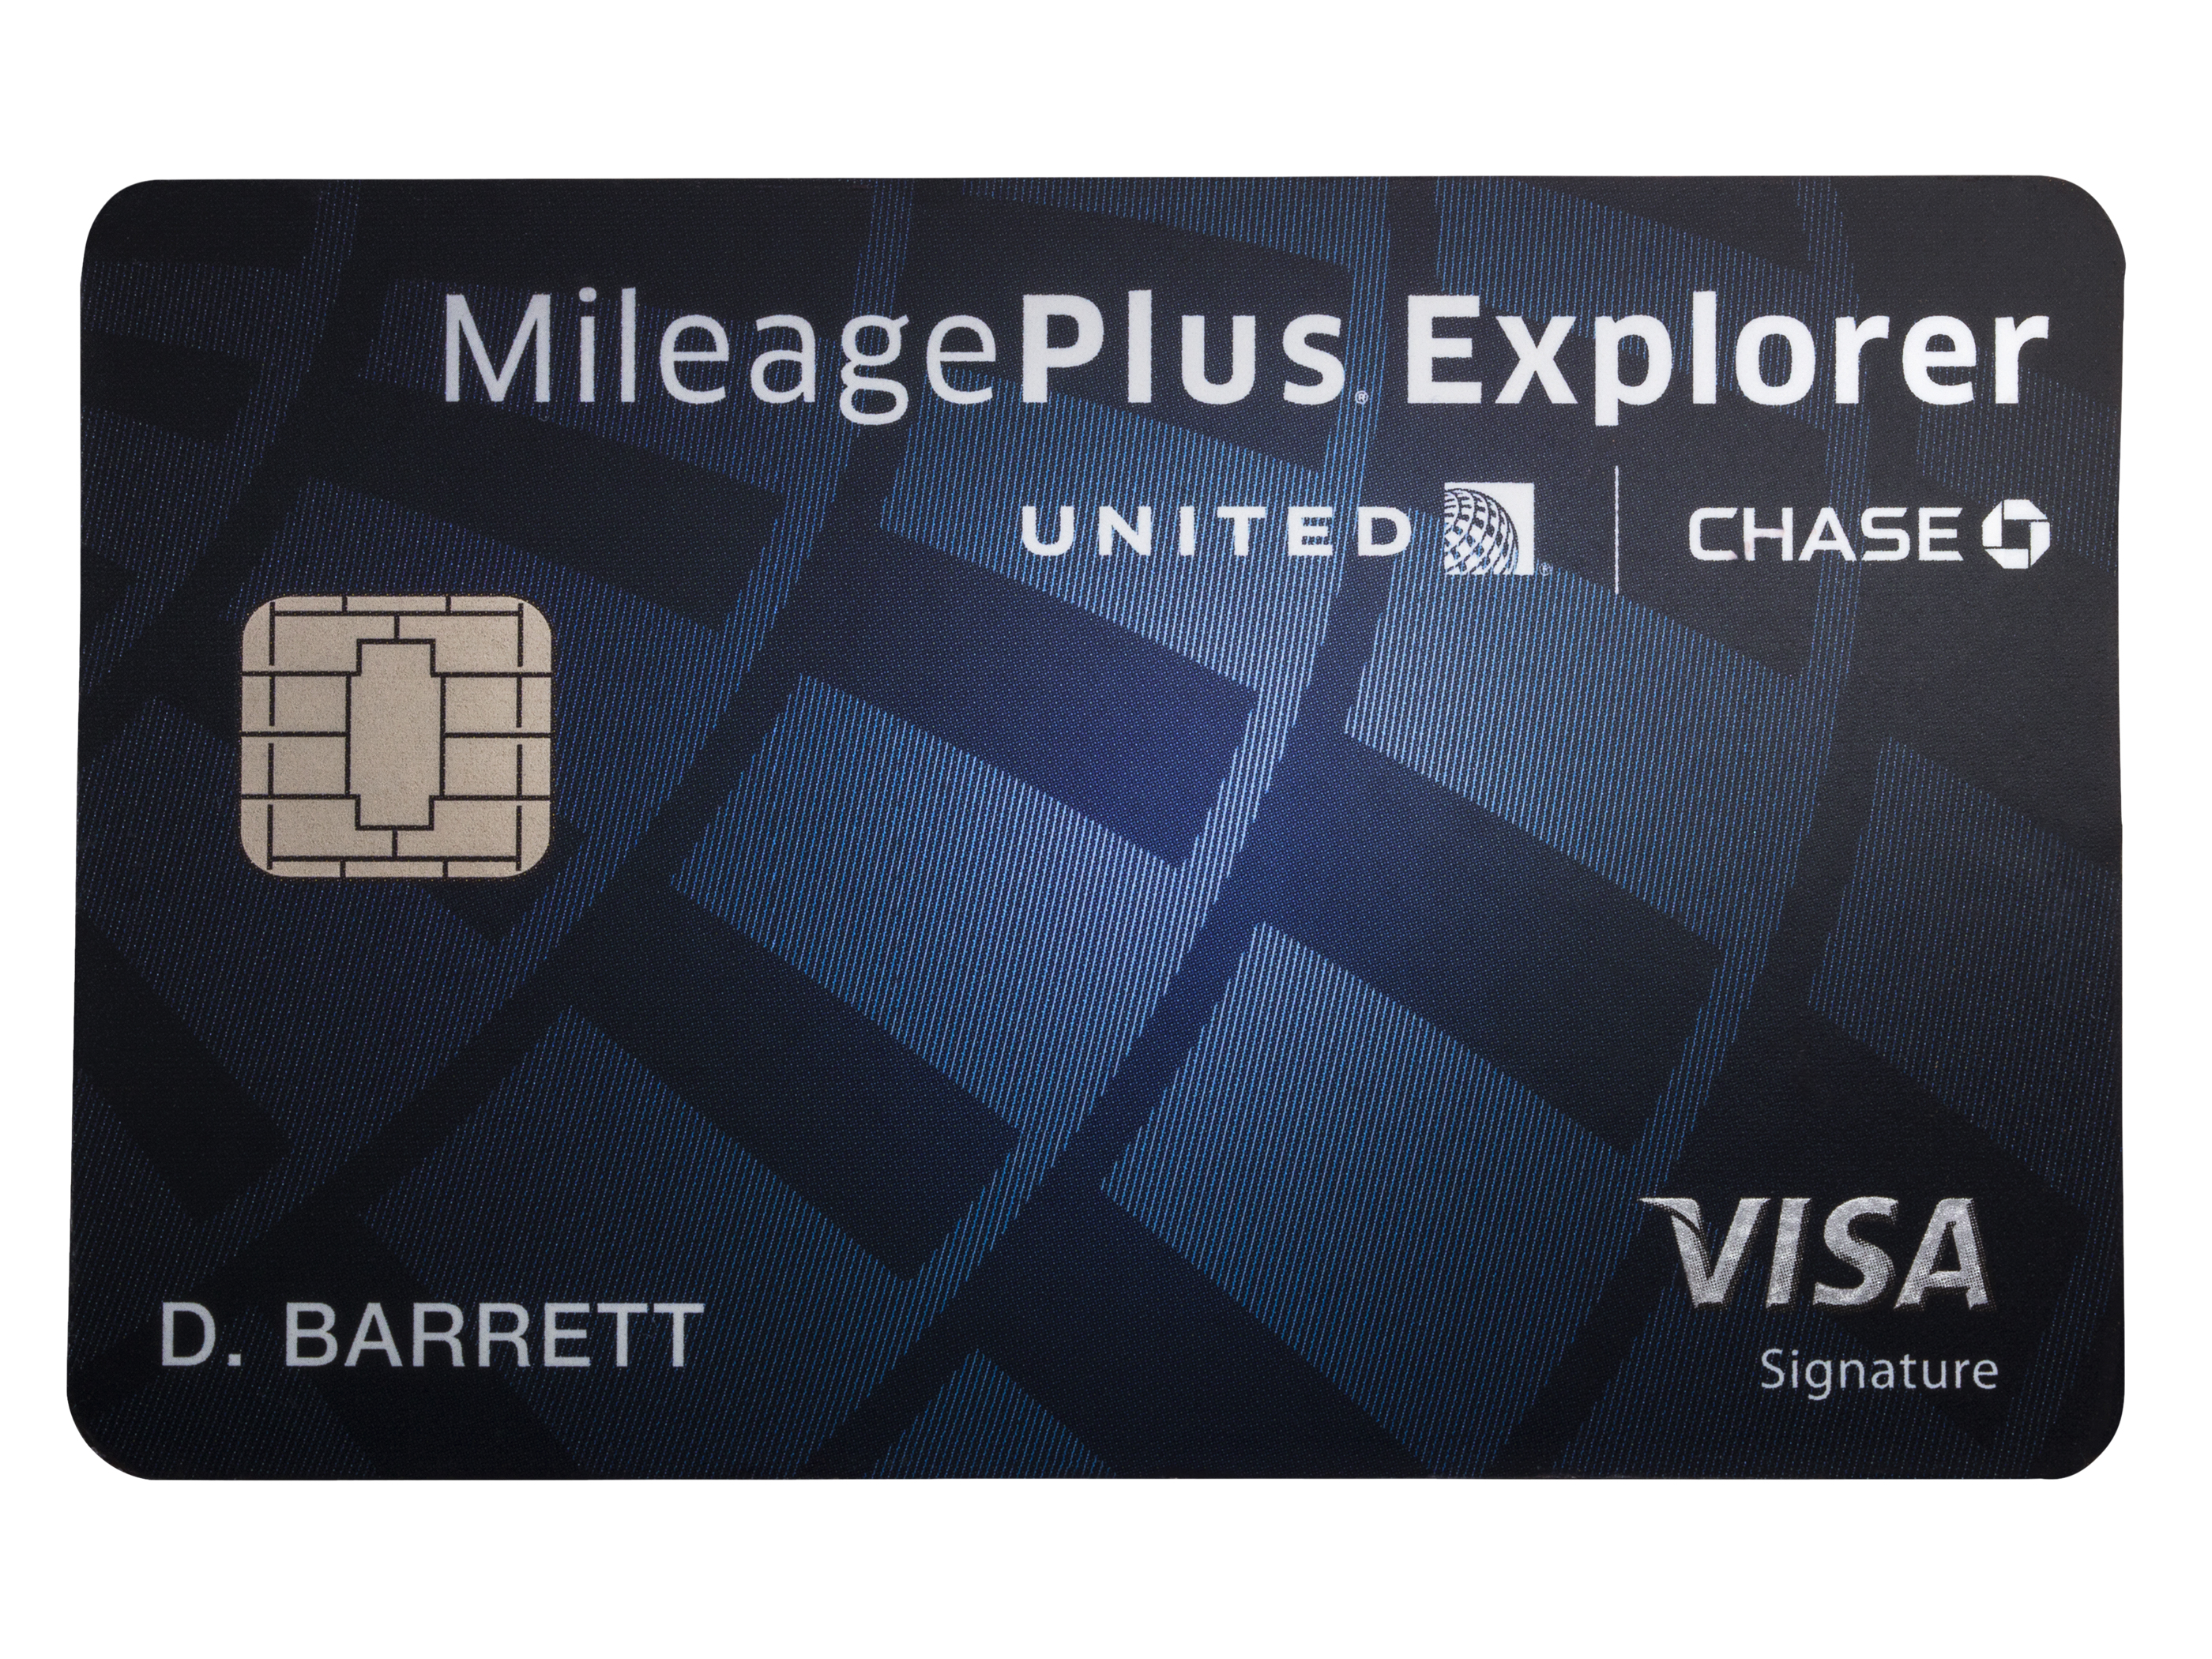 United Credit Card Customer Service Credit Card Review United Mileageplus Explorer Your Mileage